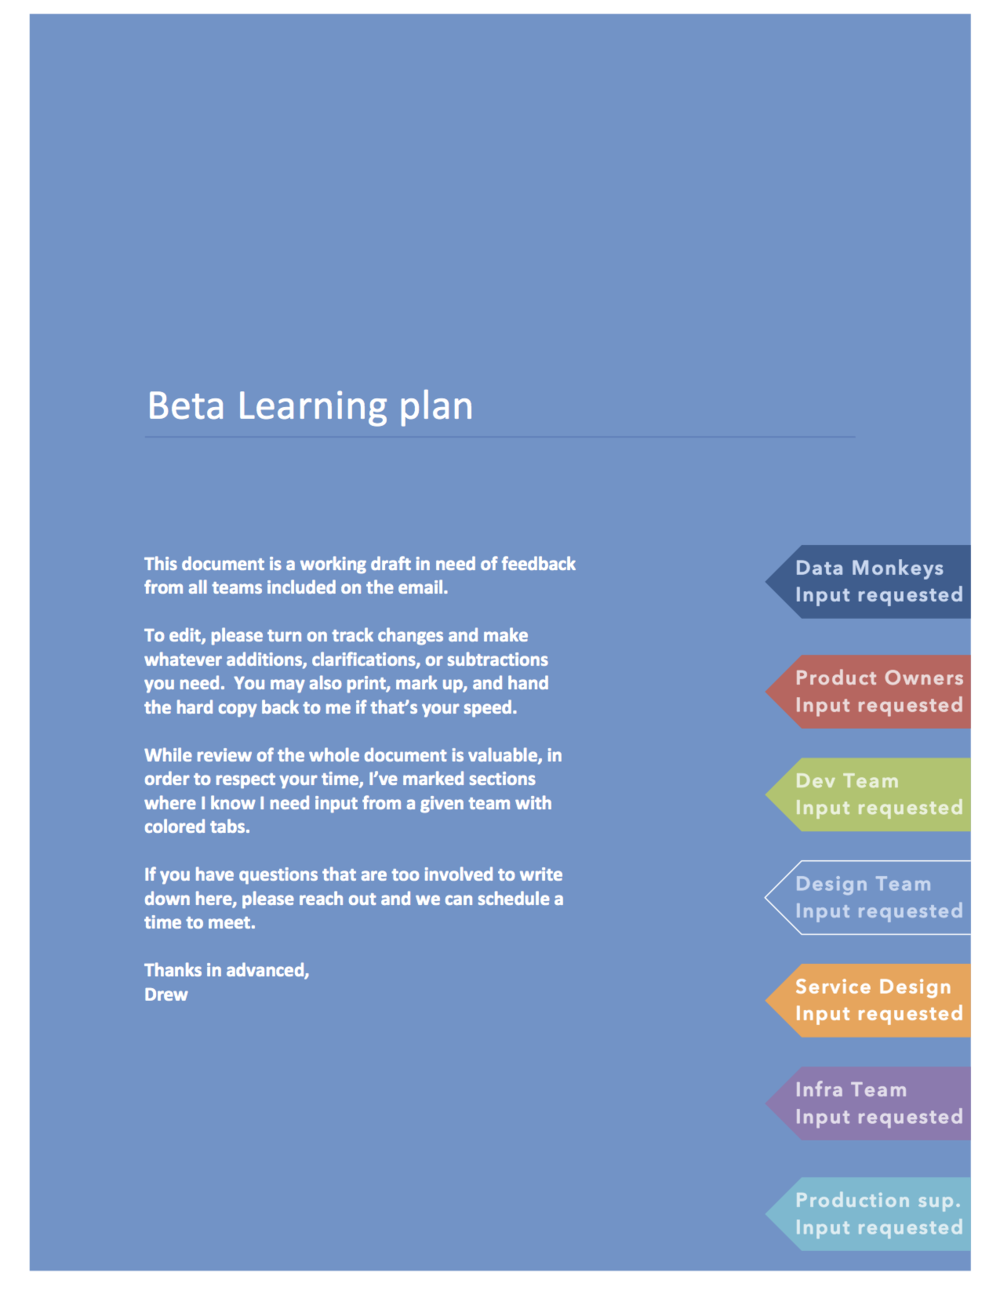 Beta Learning Plan (redacted).png